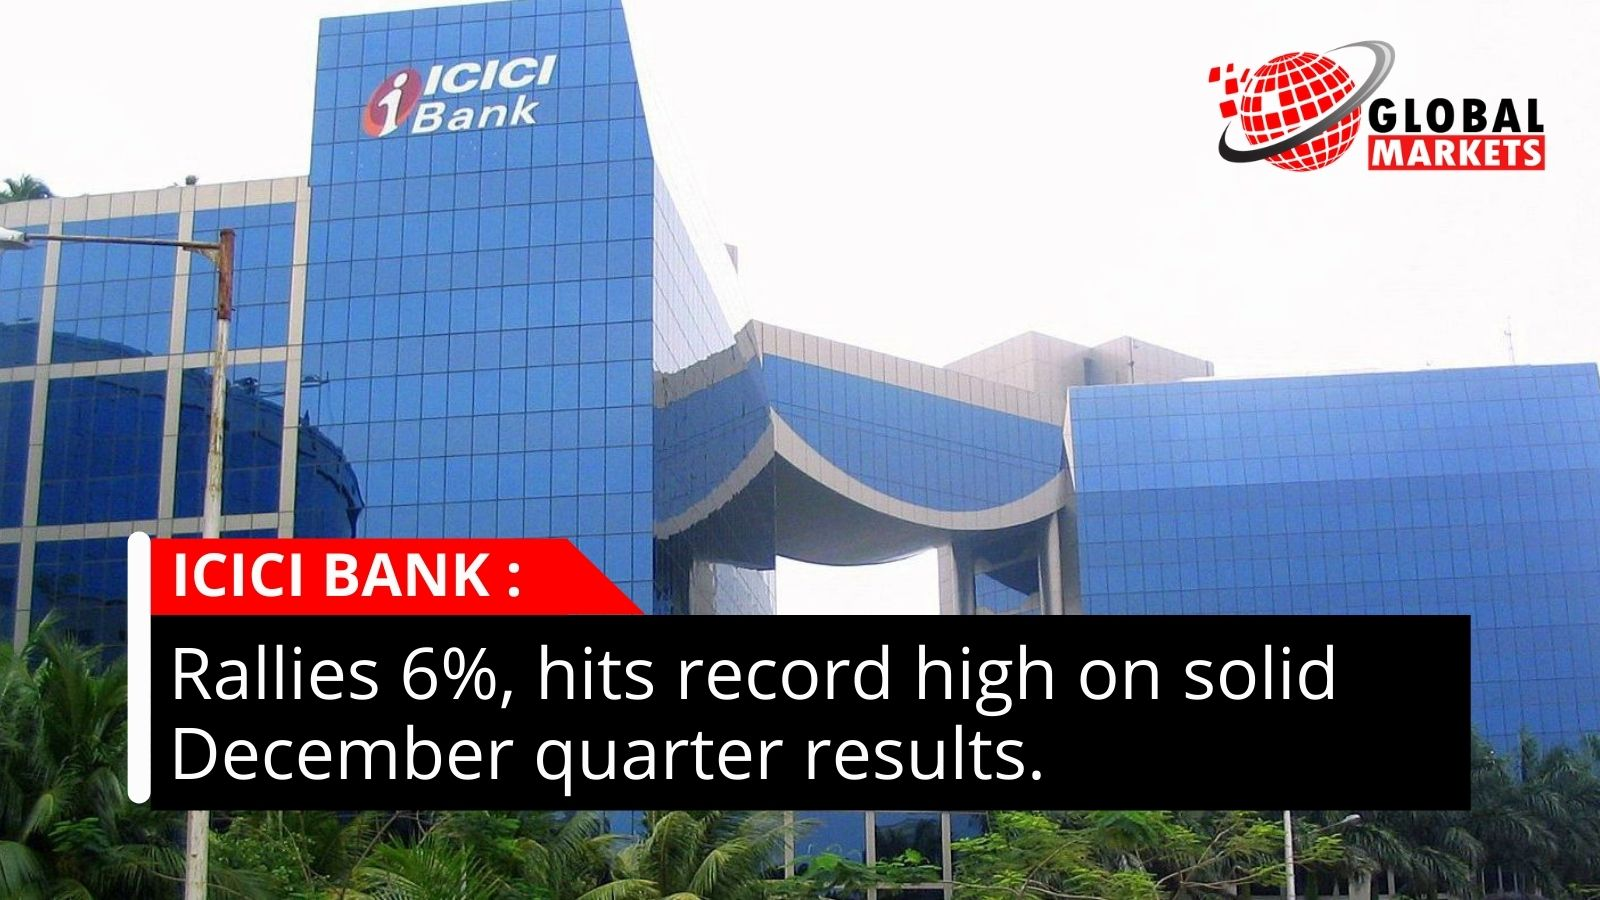 ICICI Bank rallies 6%, hits record high on solid December quarter results.